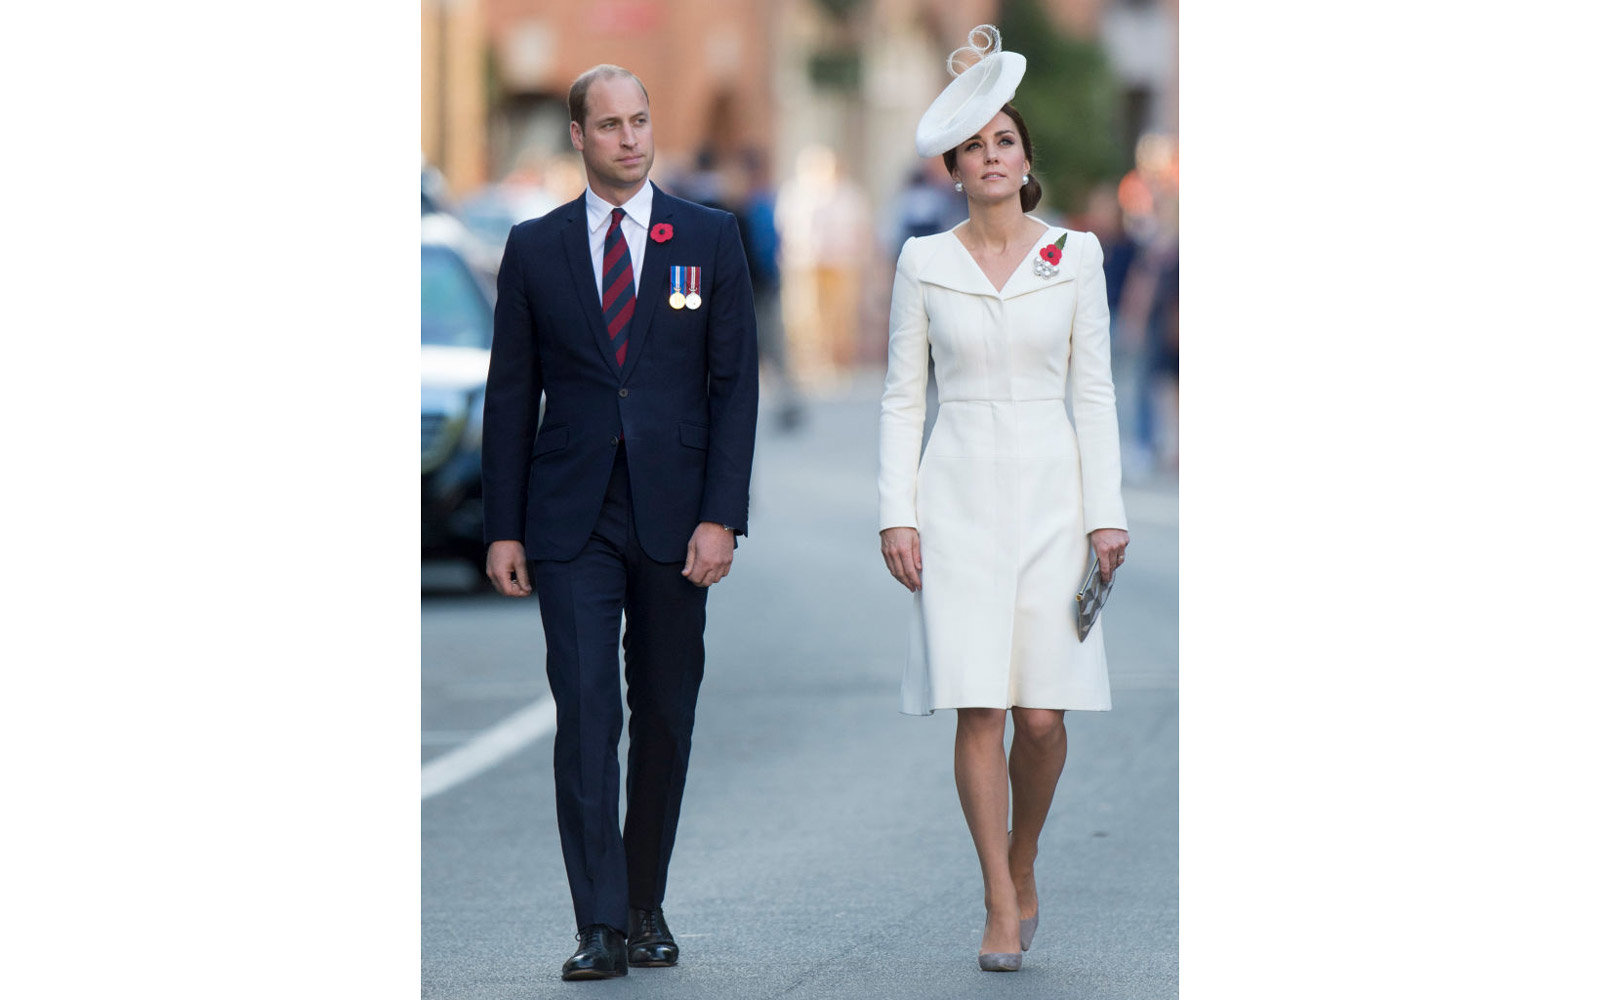 YPRES, BELGIUM - JULY 30:  Catherine, Duchess of Cambridge and Prince William, Duke of Cambridge attend the Last Post ceremony at the Commonwealth War Graves Commission Ypres (Menin Gate) Memorial on July 30, 2017 in Ypres, Belgium.  The commemorations ma